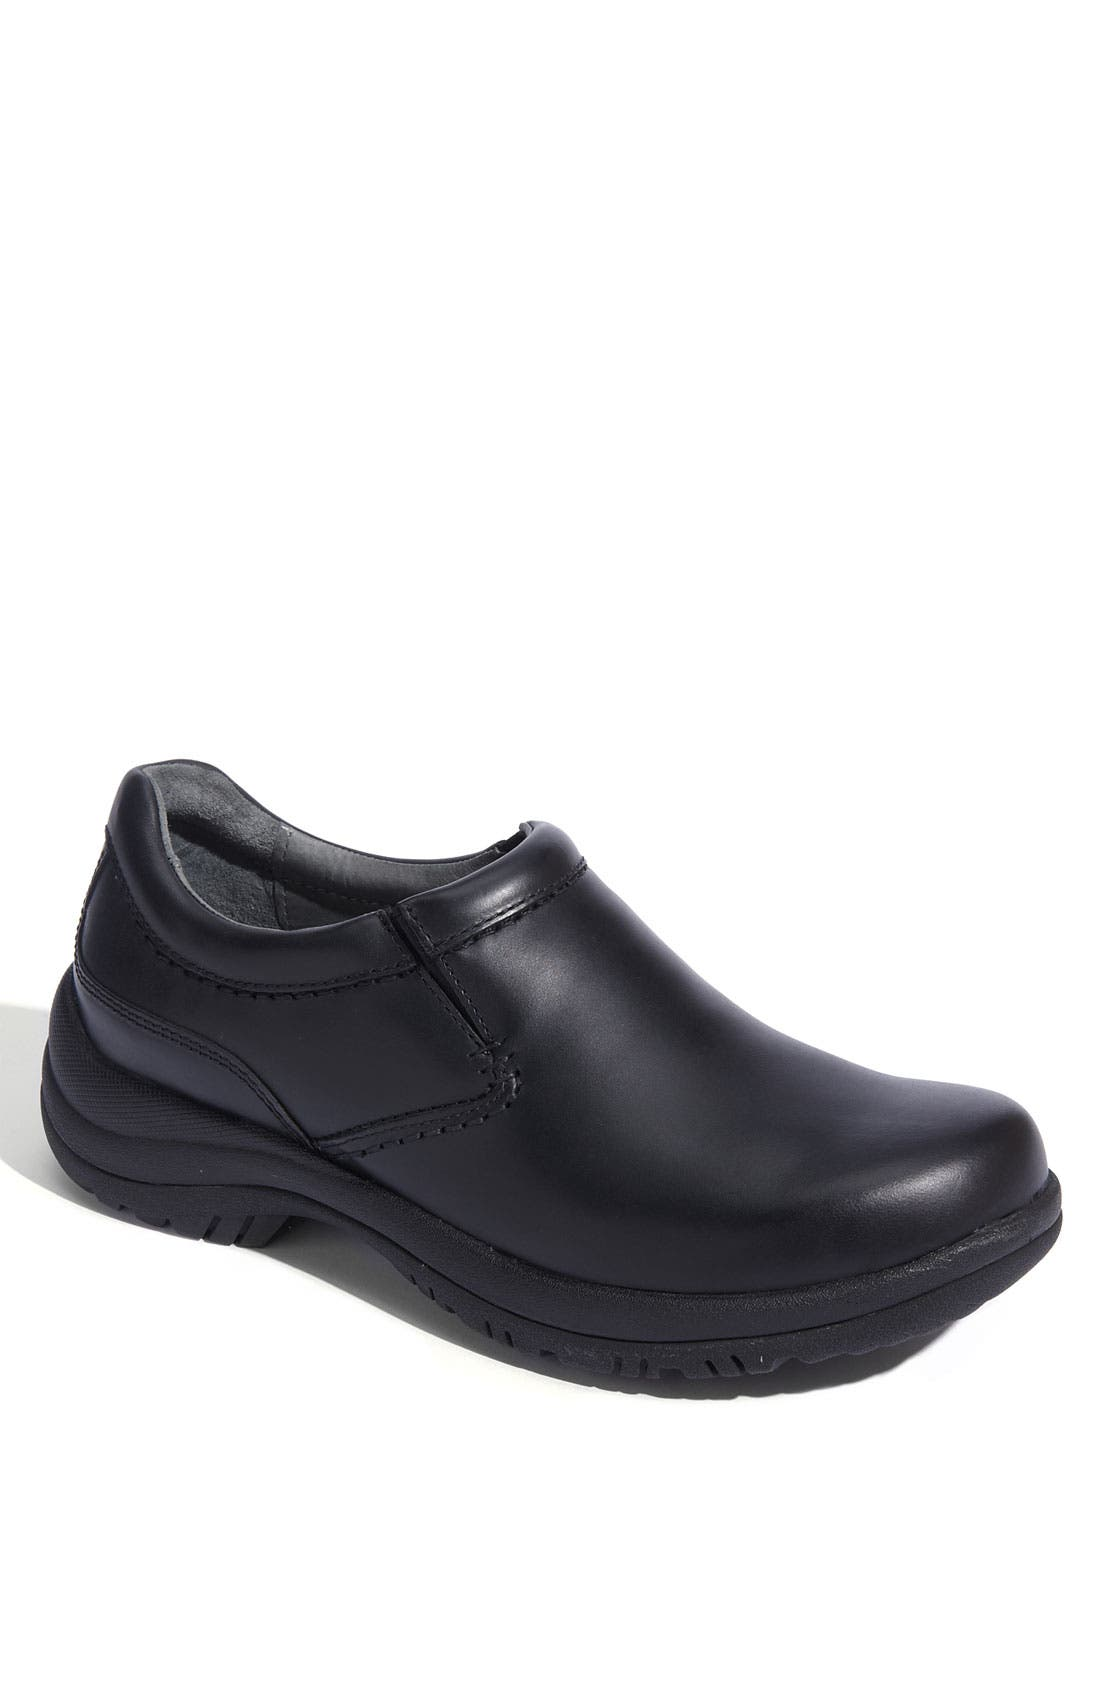 'Wynn' Slip-On,                         Main,                         color, Black